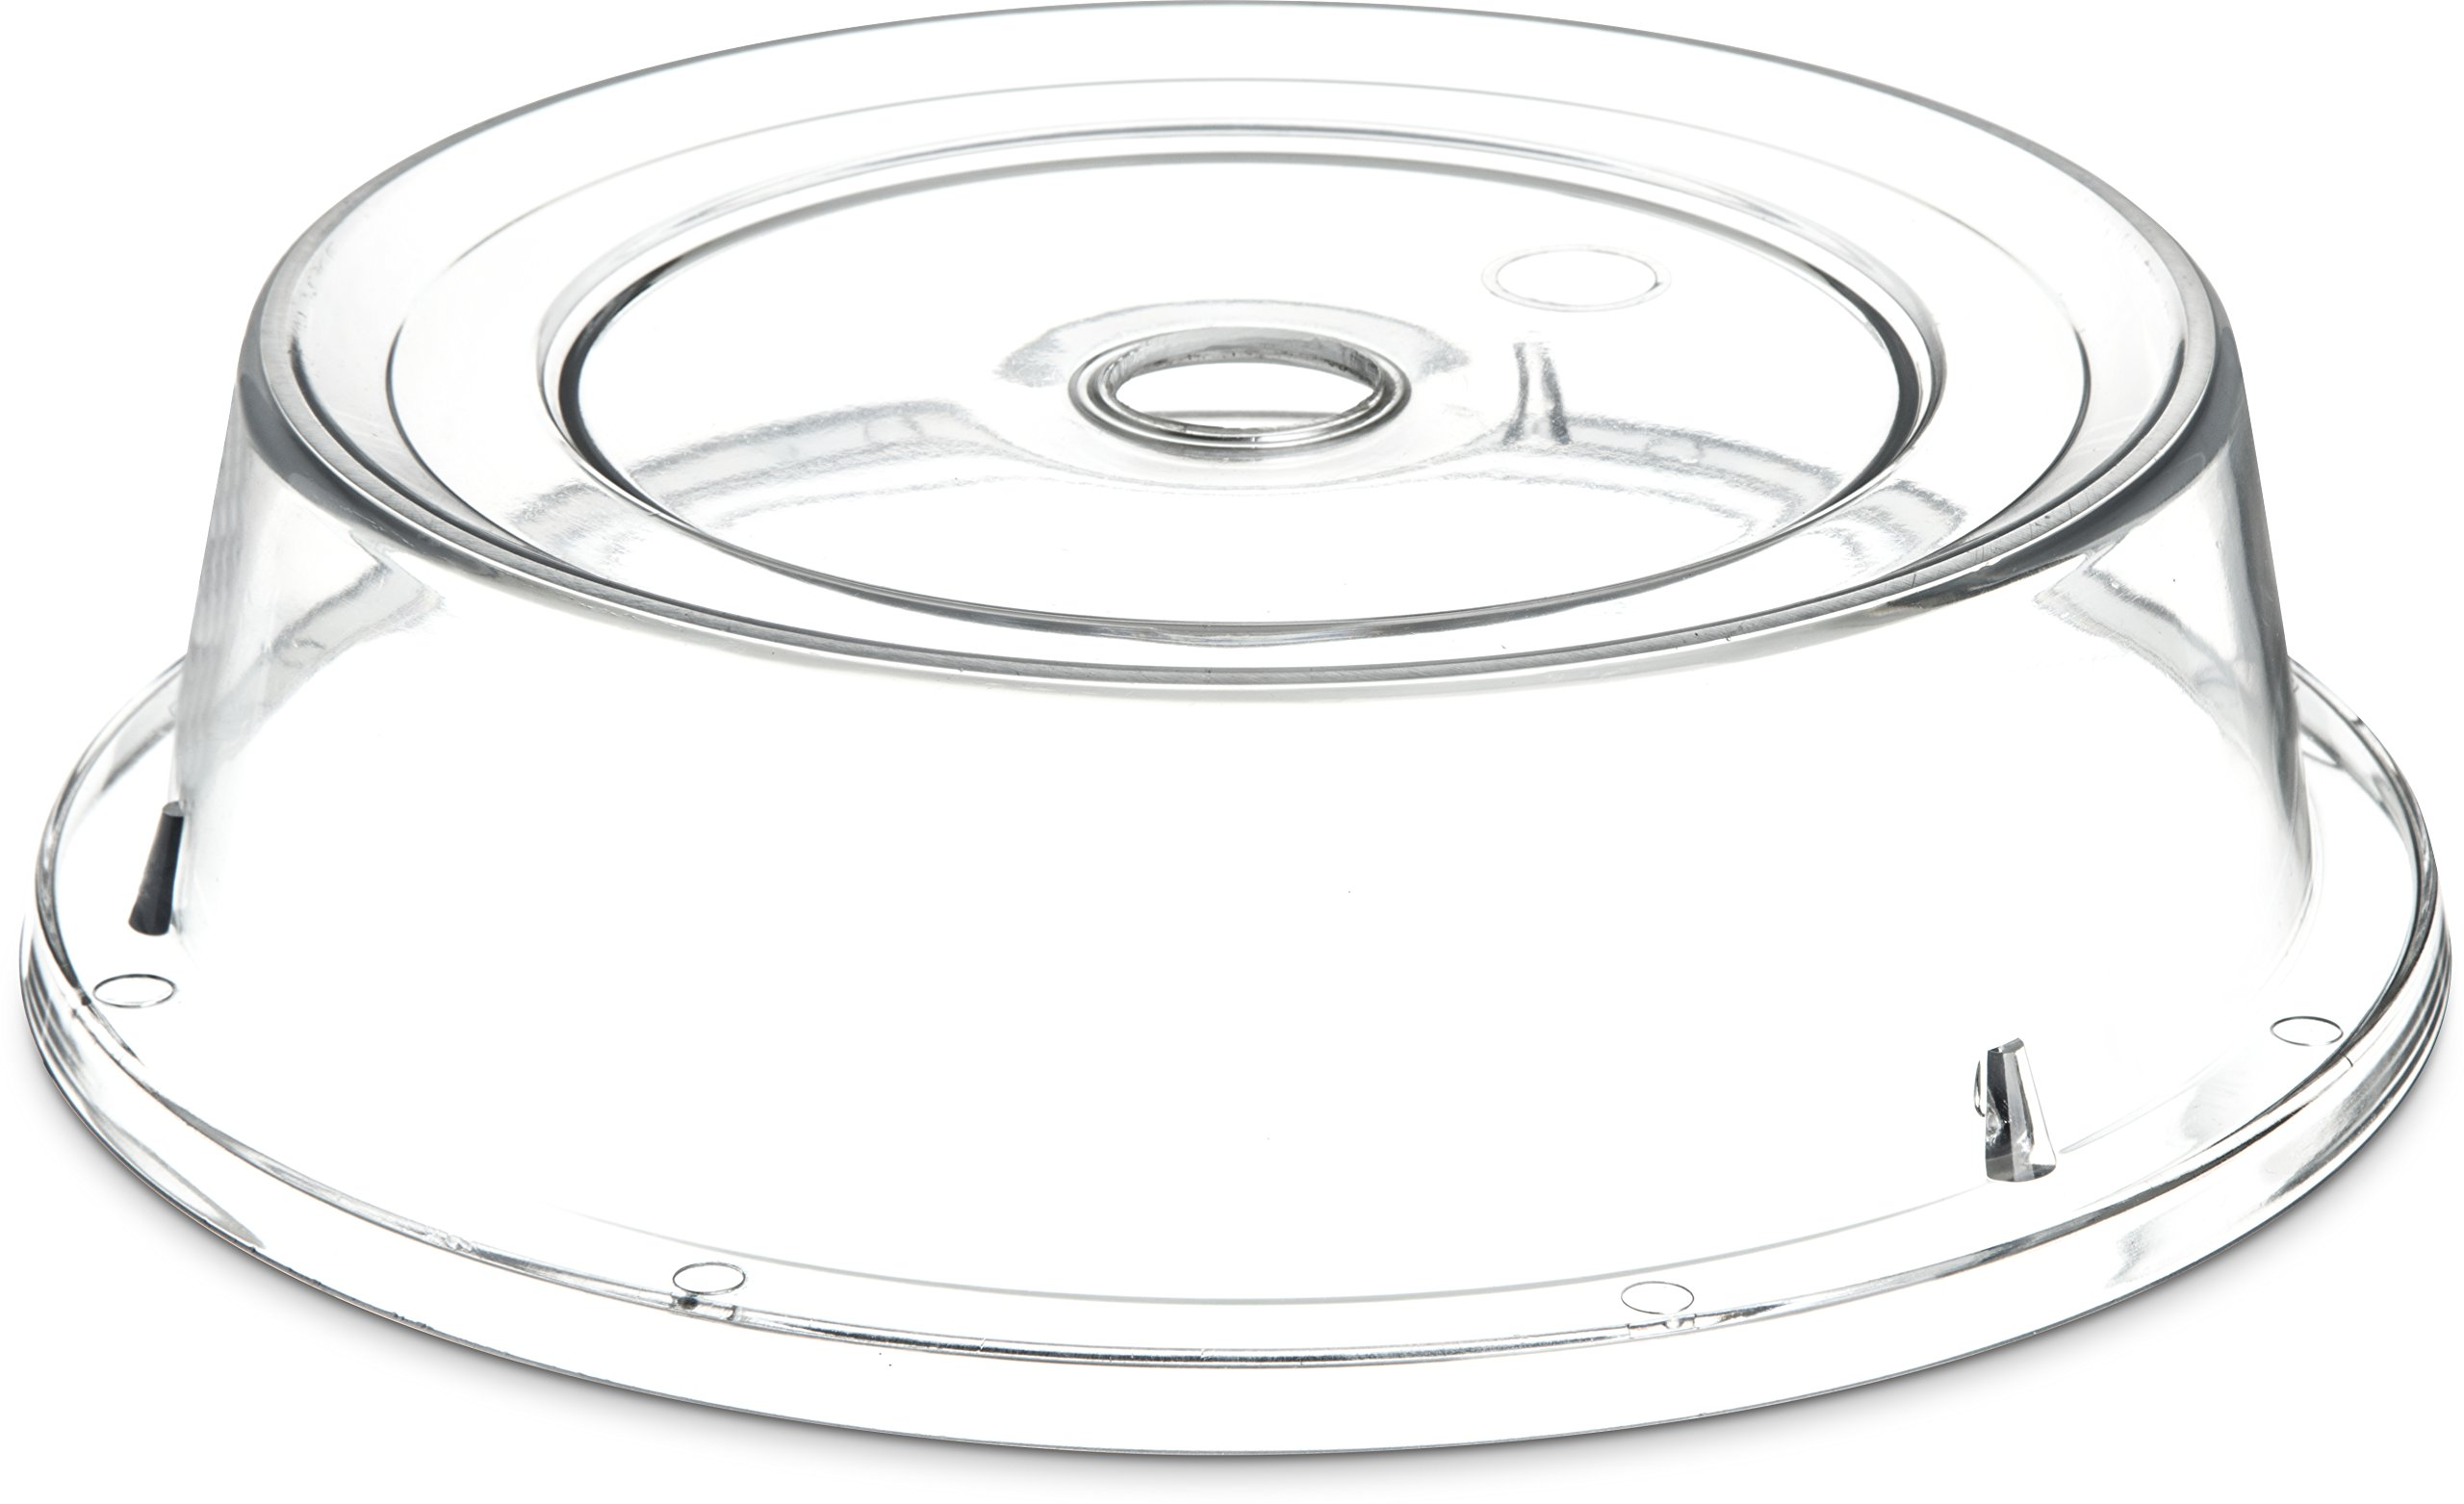 Carlisle 190007 Polycarbonate Plate Cover, 9.37'' Bottom Diameter x 2.56'' Height, Clear (Case of 12) by Carlisle (Image #8)